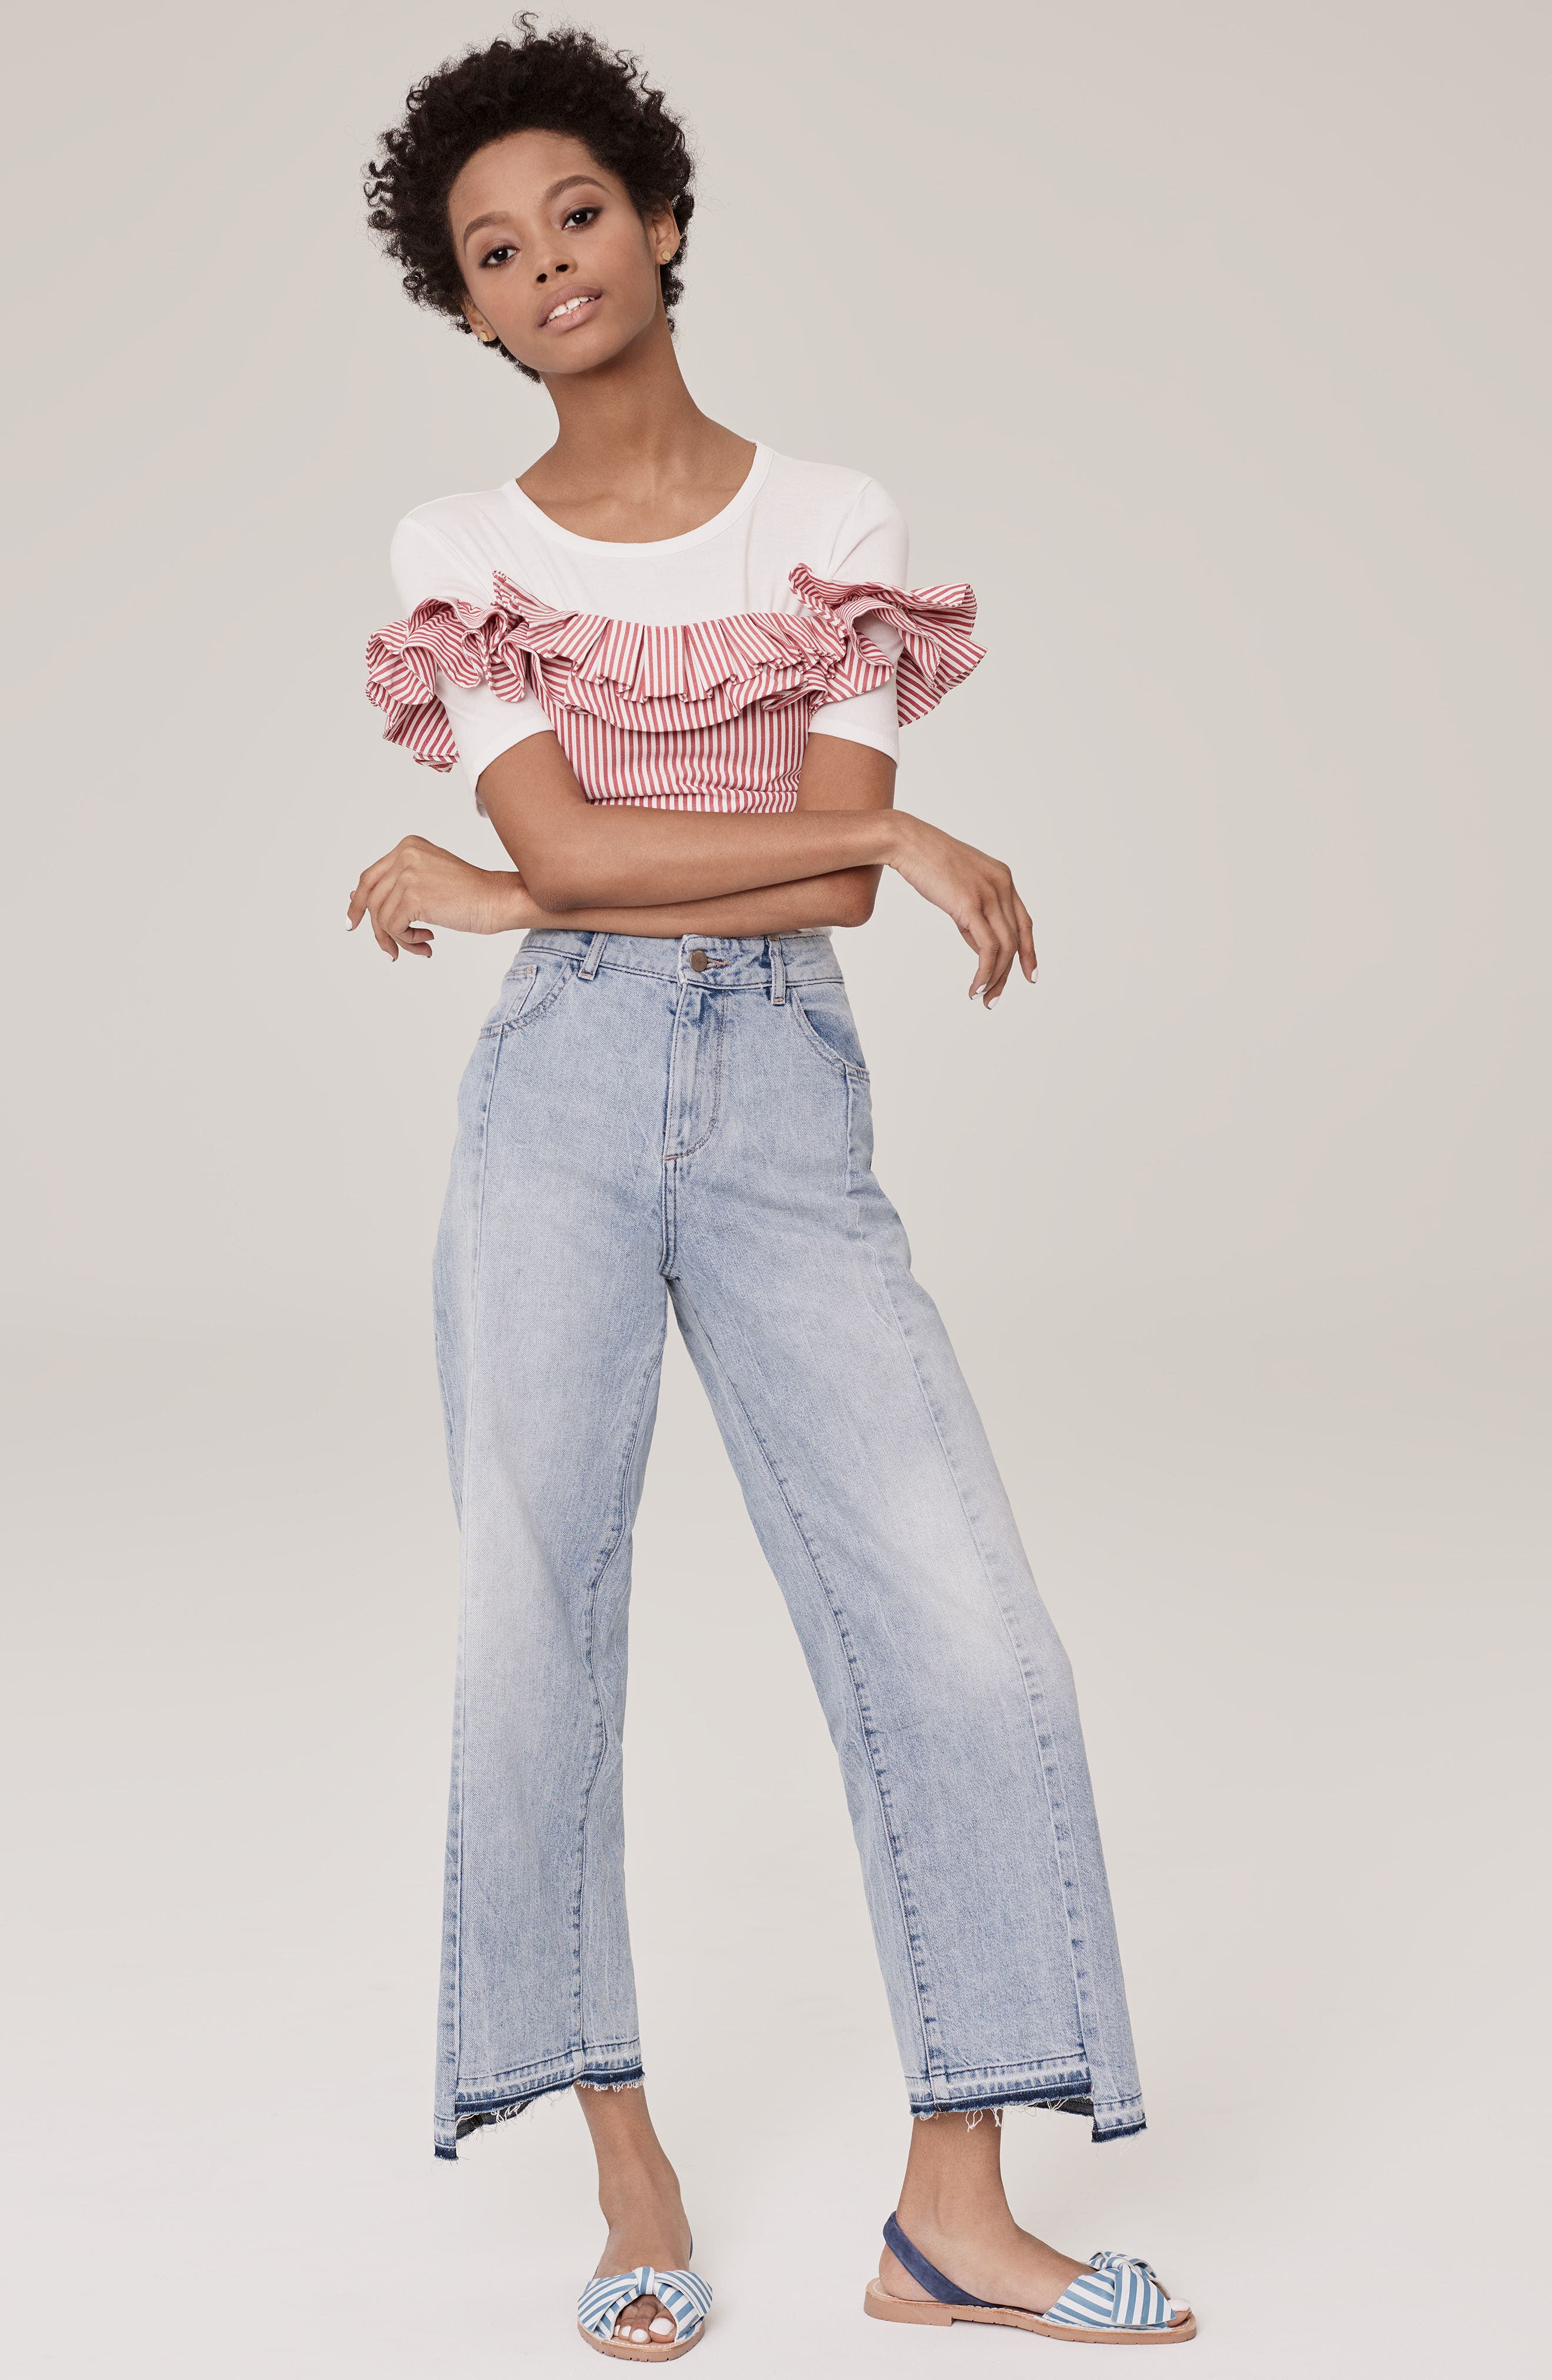 Anzio Off the Shoulder Ruffle Crop Top,                             Alternate thumbnail 7, color,                             Red Stripe